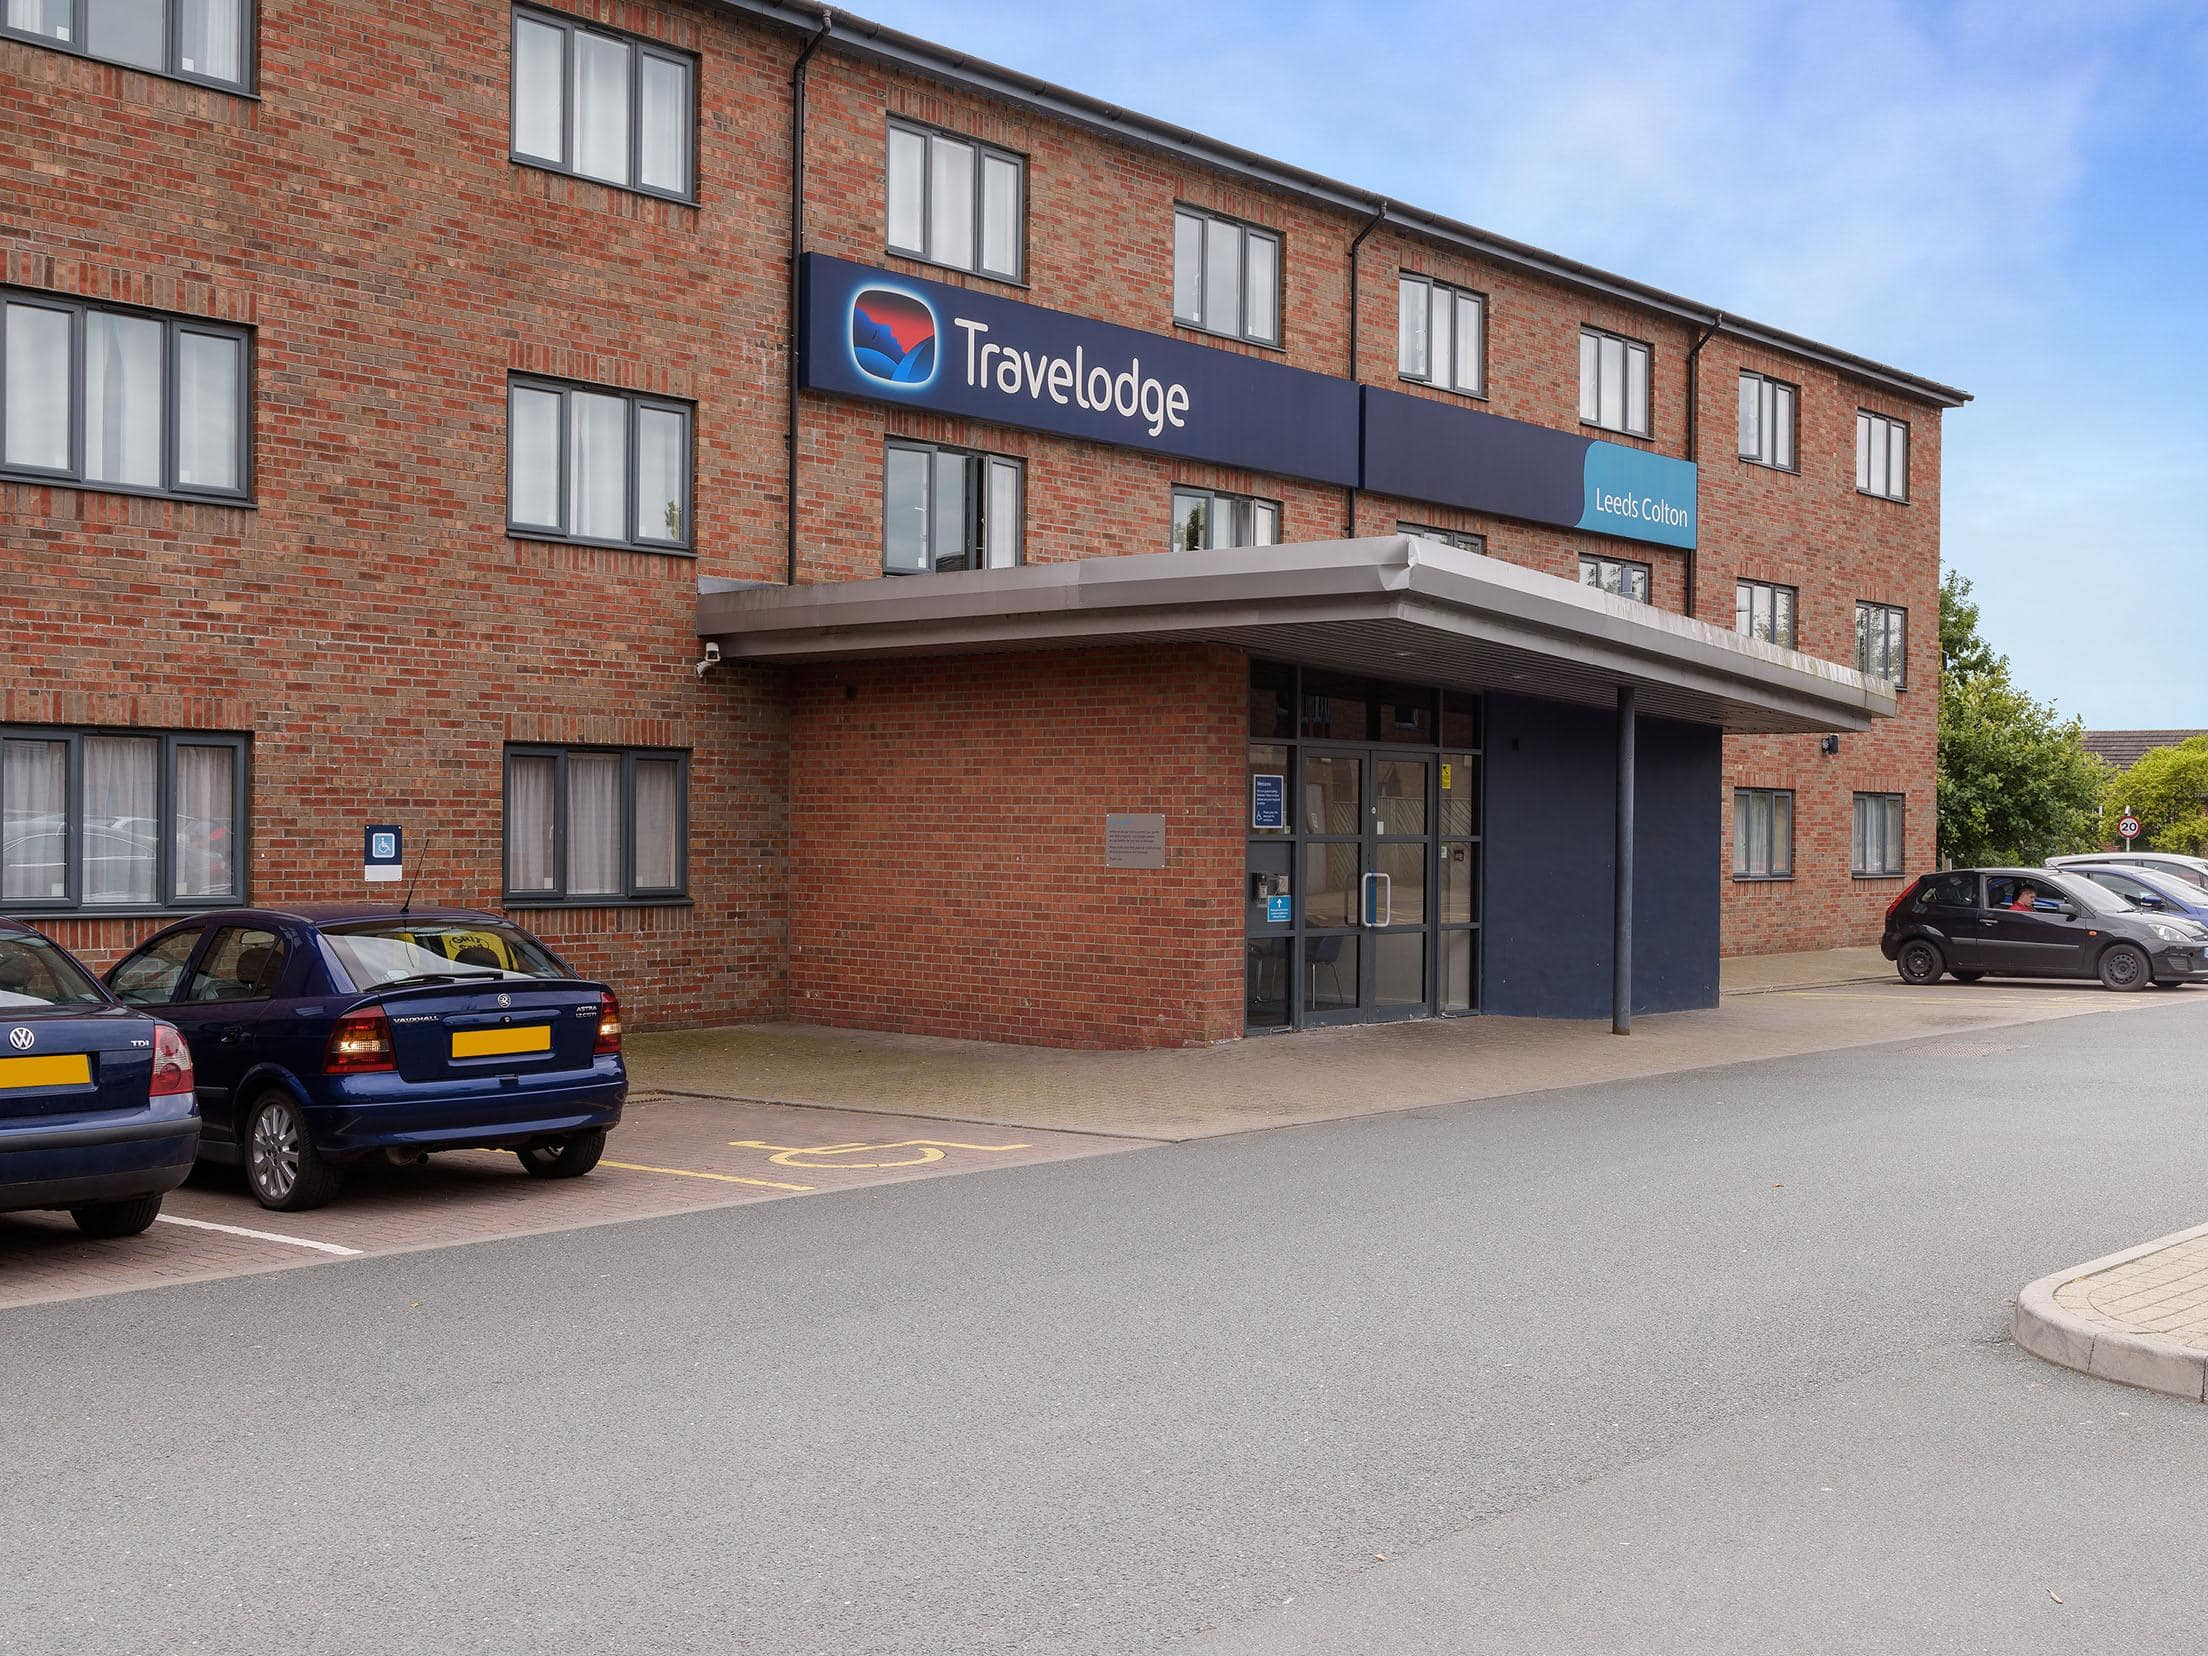 Albergo York Travelodge York Central Micklegate Hotel York Central